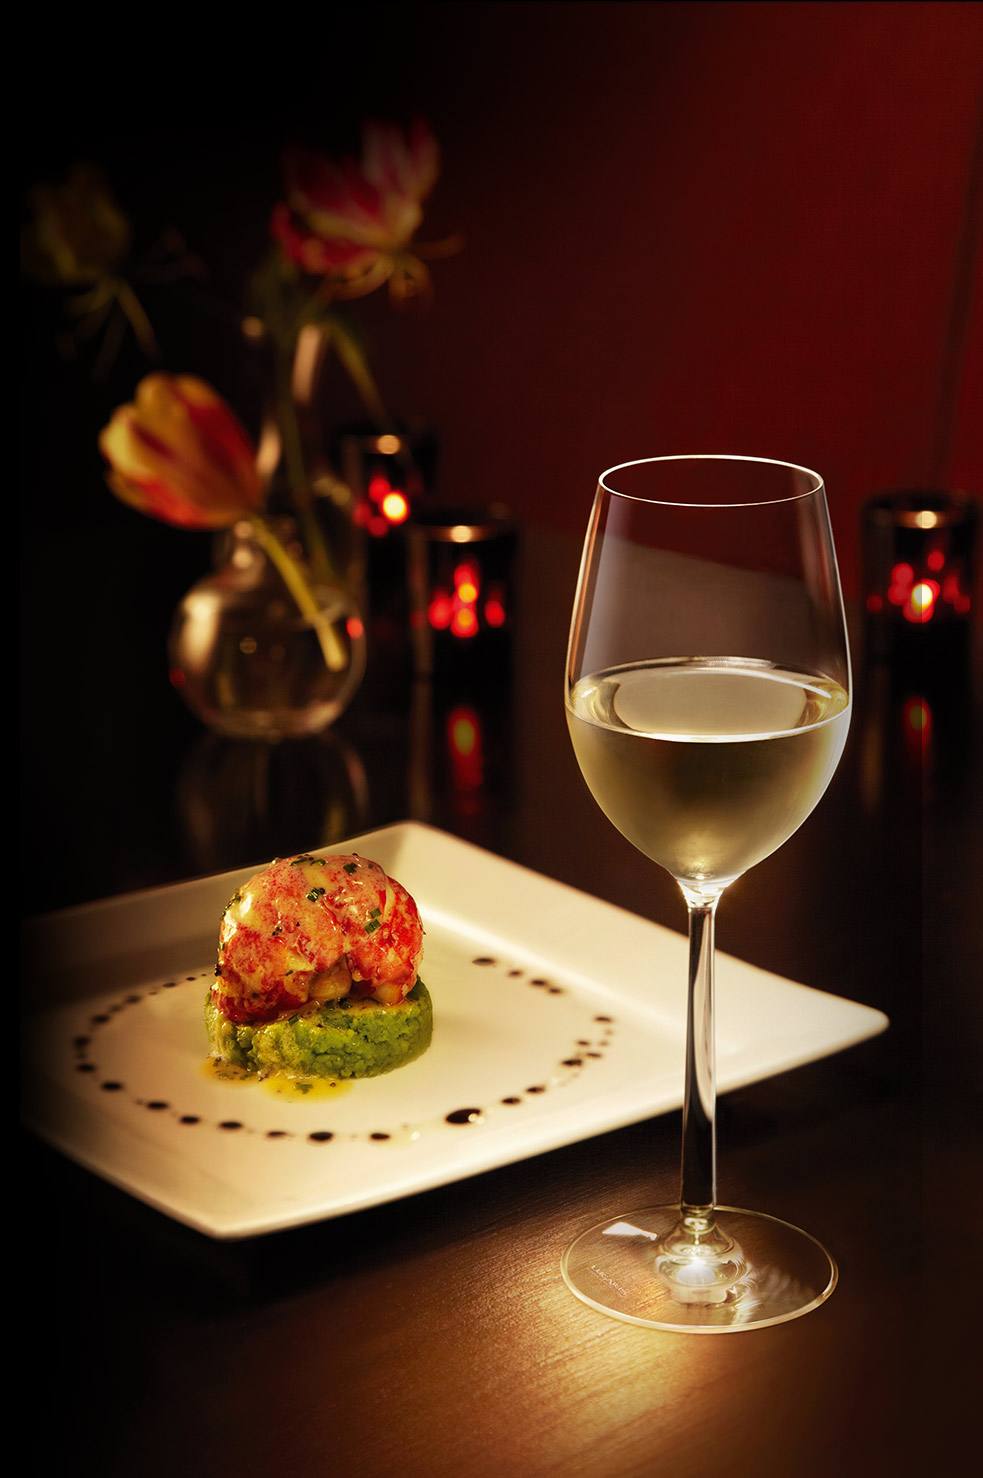 Evoke The Wining Senses In Modern Asian Cuisine